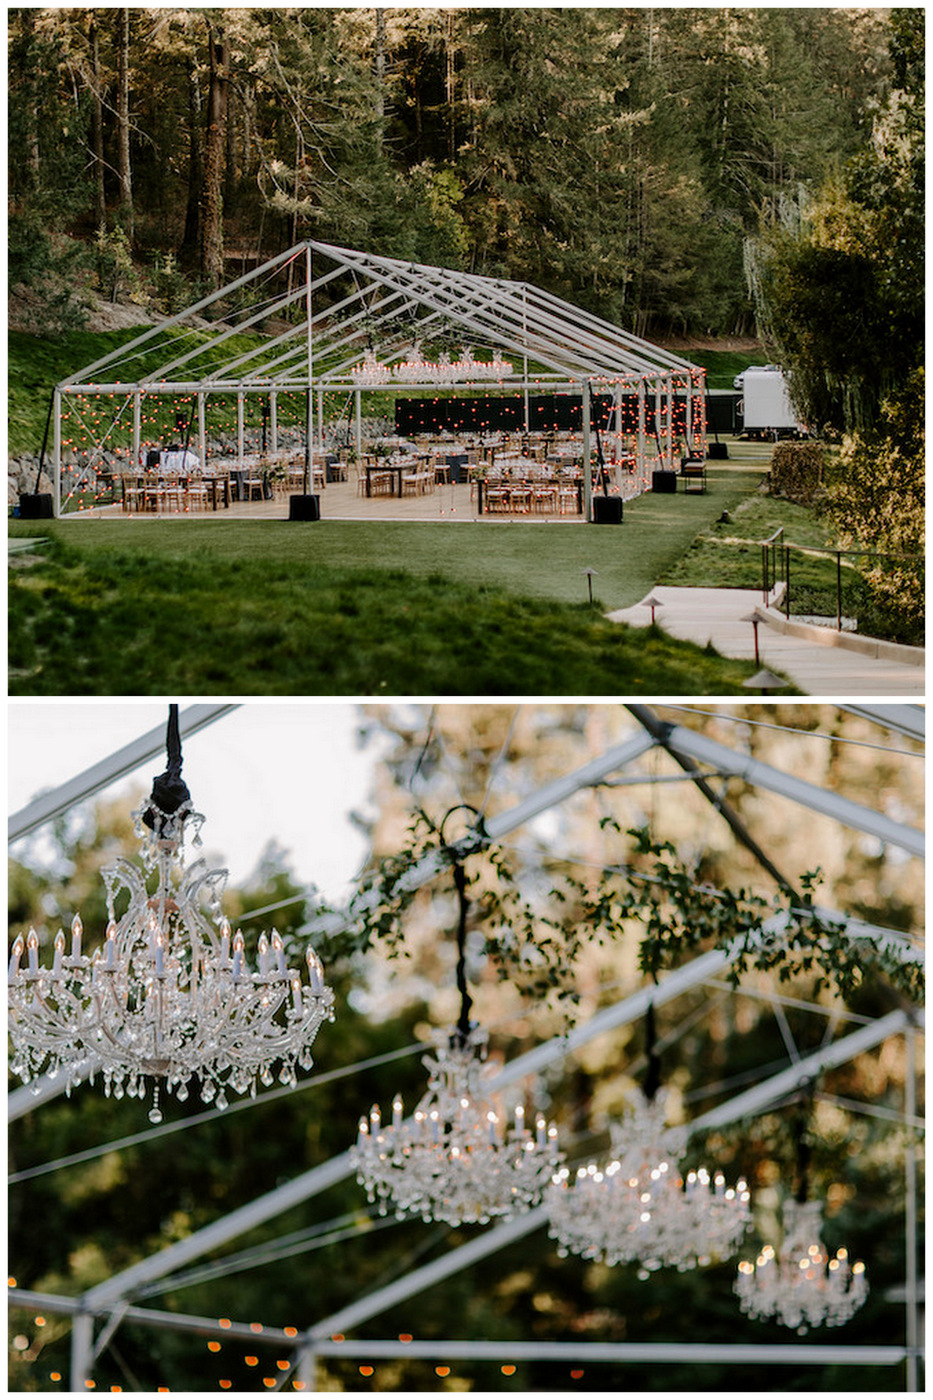 Enchanted Garden Wedding in Modern, Romantic Jewel Tones